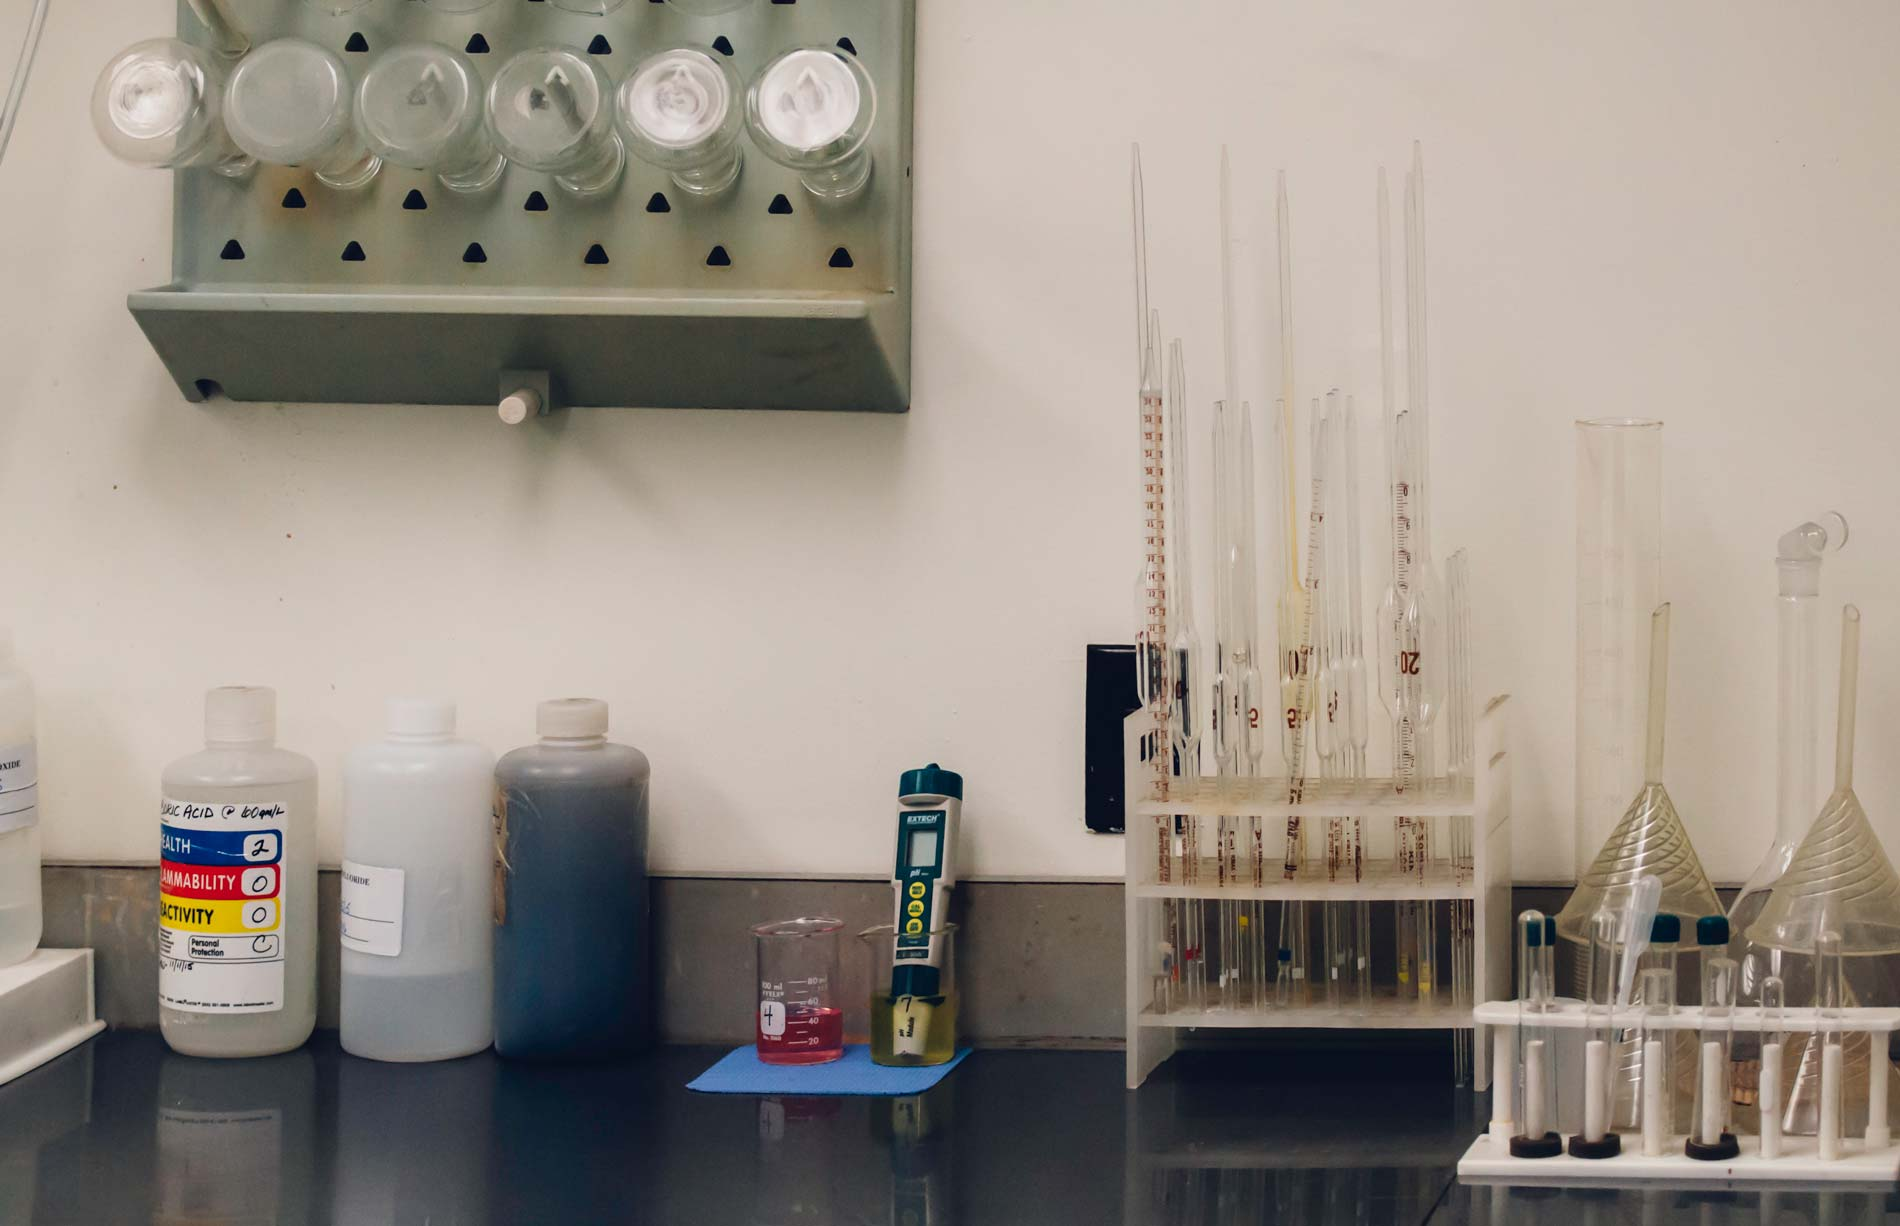 A counter with chemicals, measuring instruments, funnels, and pipettes.